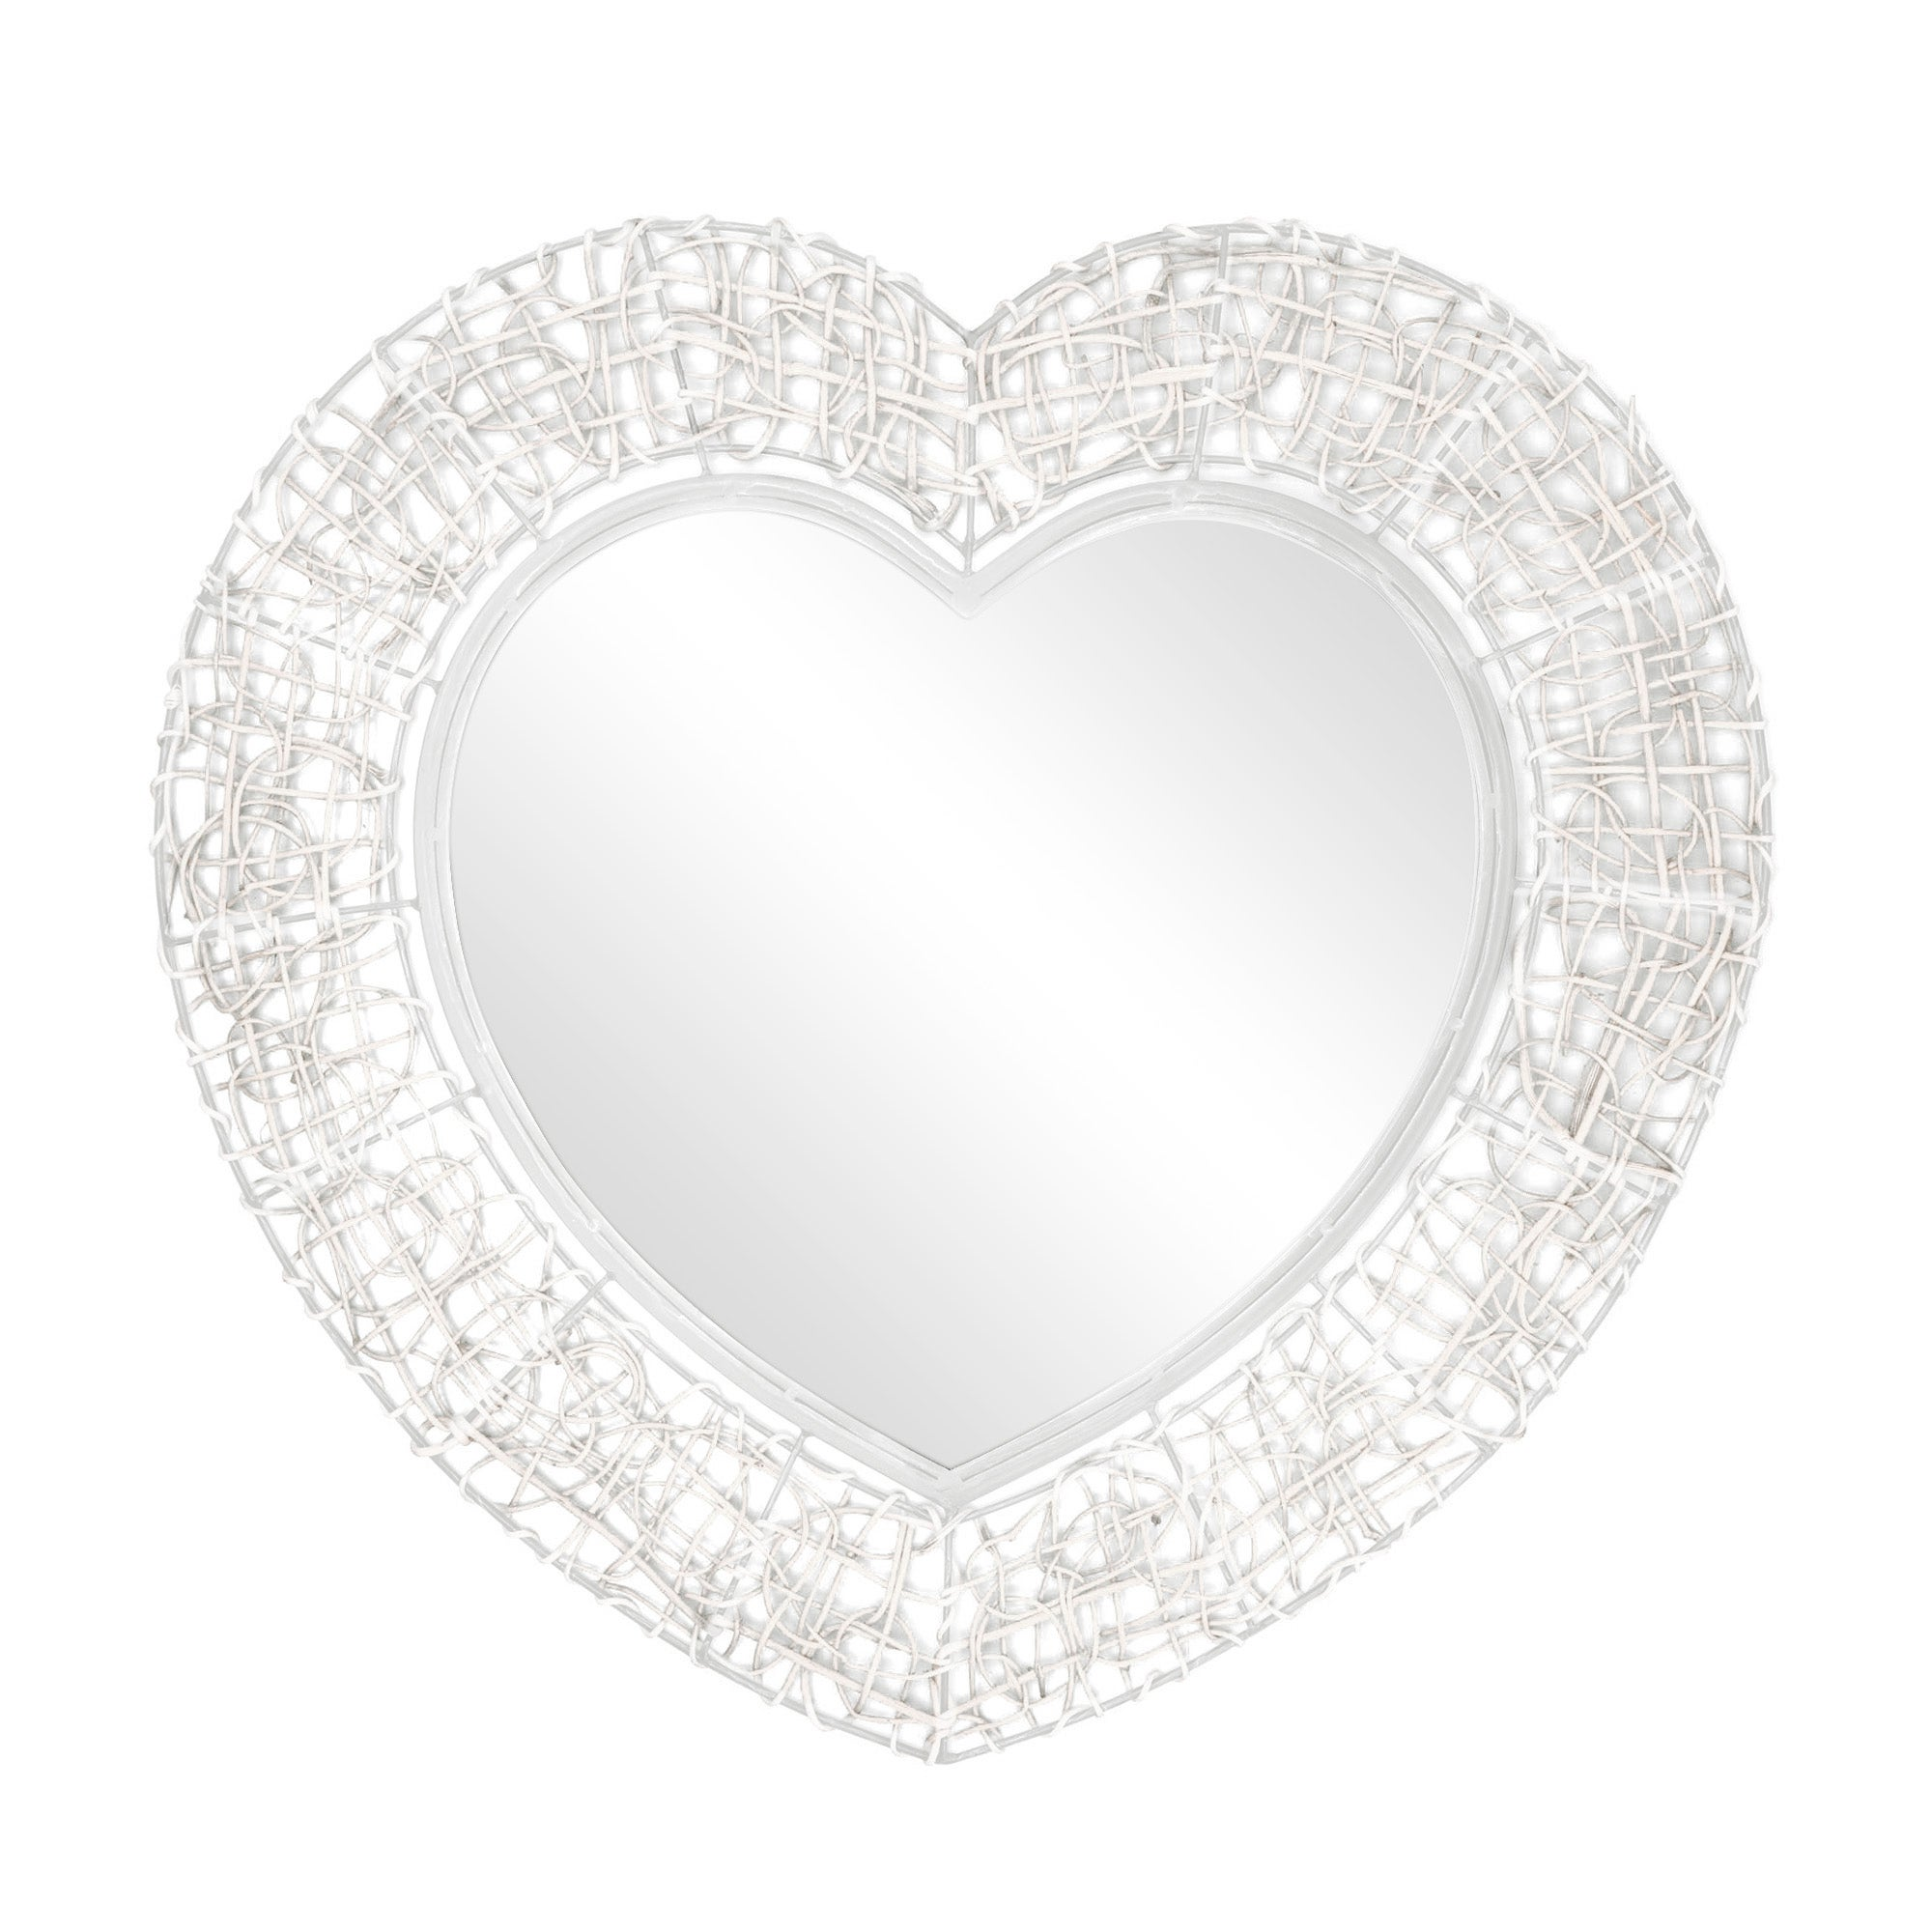 Wicker Heart Mirror